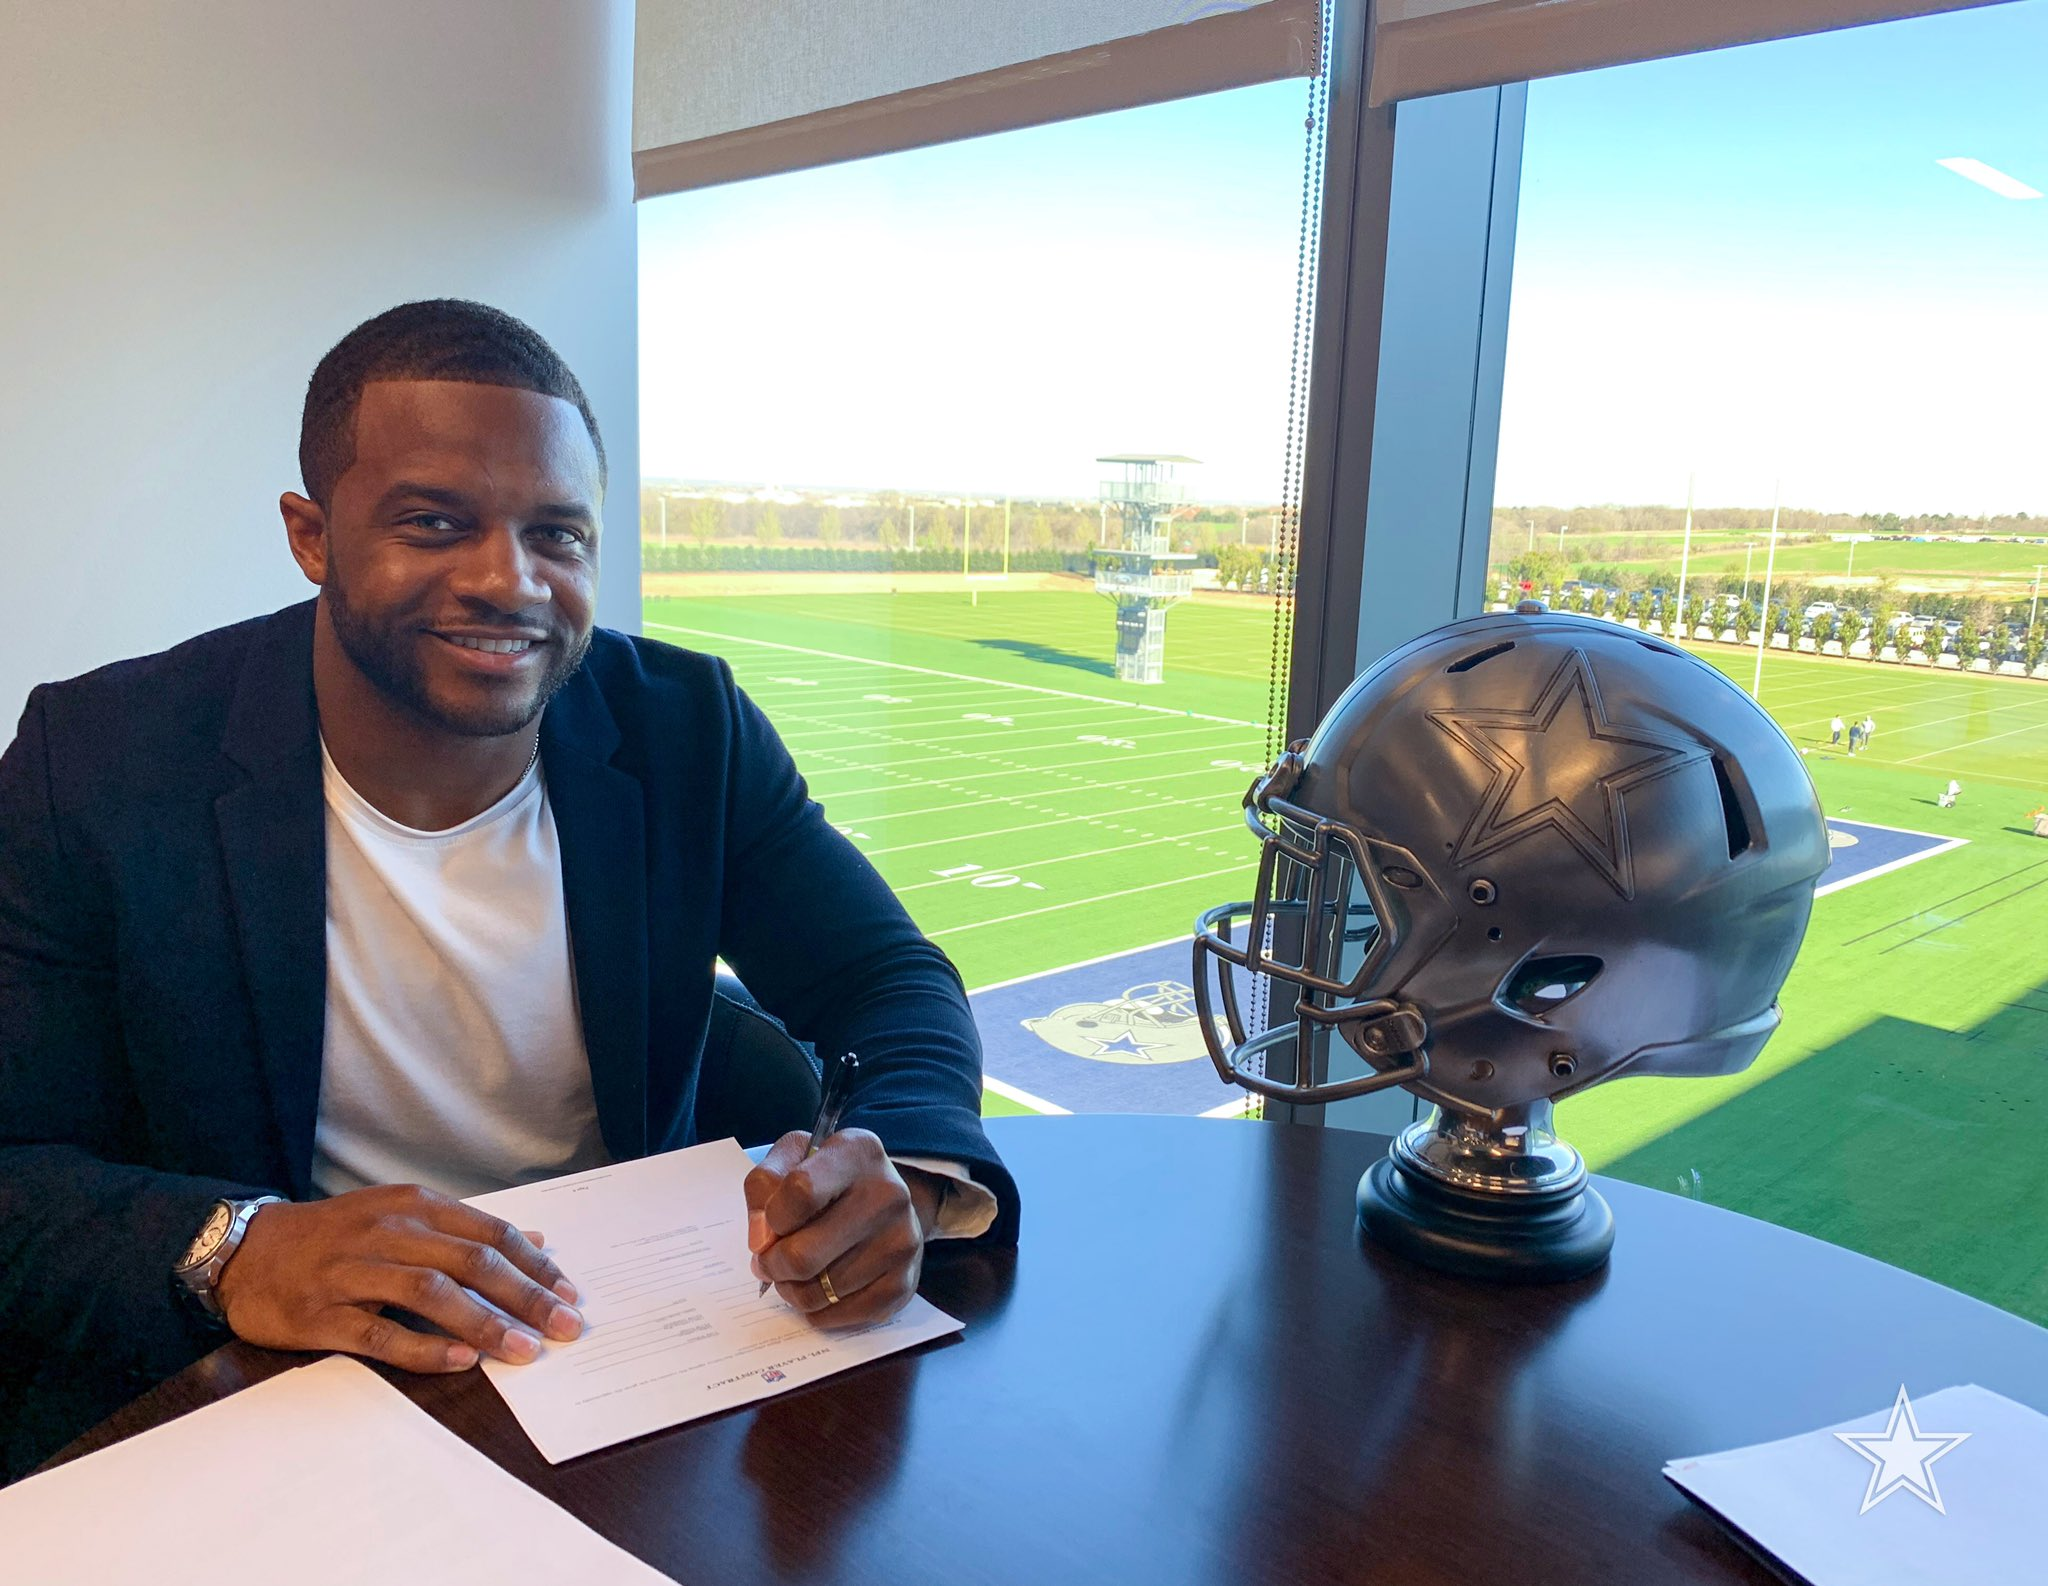 Officially official, @rcobb18 is ready for the job! ✍️ #DallasCowboys https://t.co/lDsYeo80r2